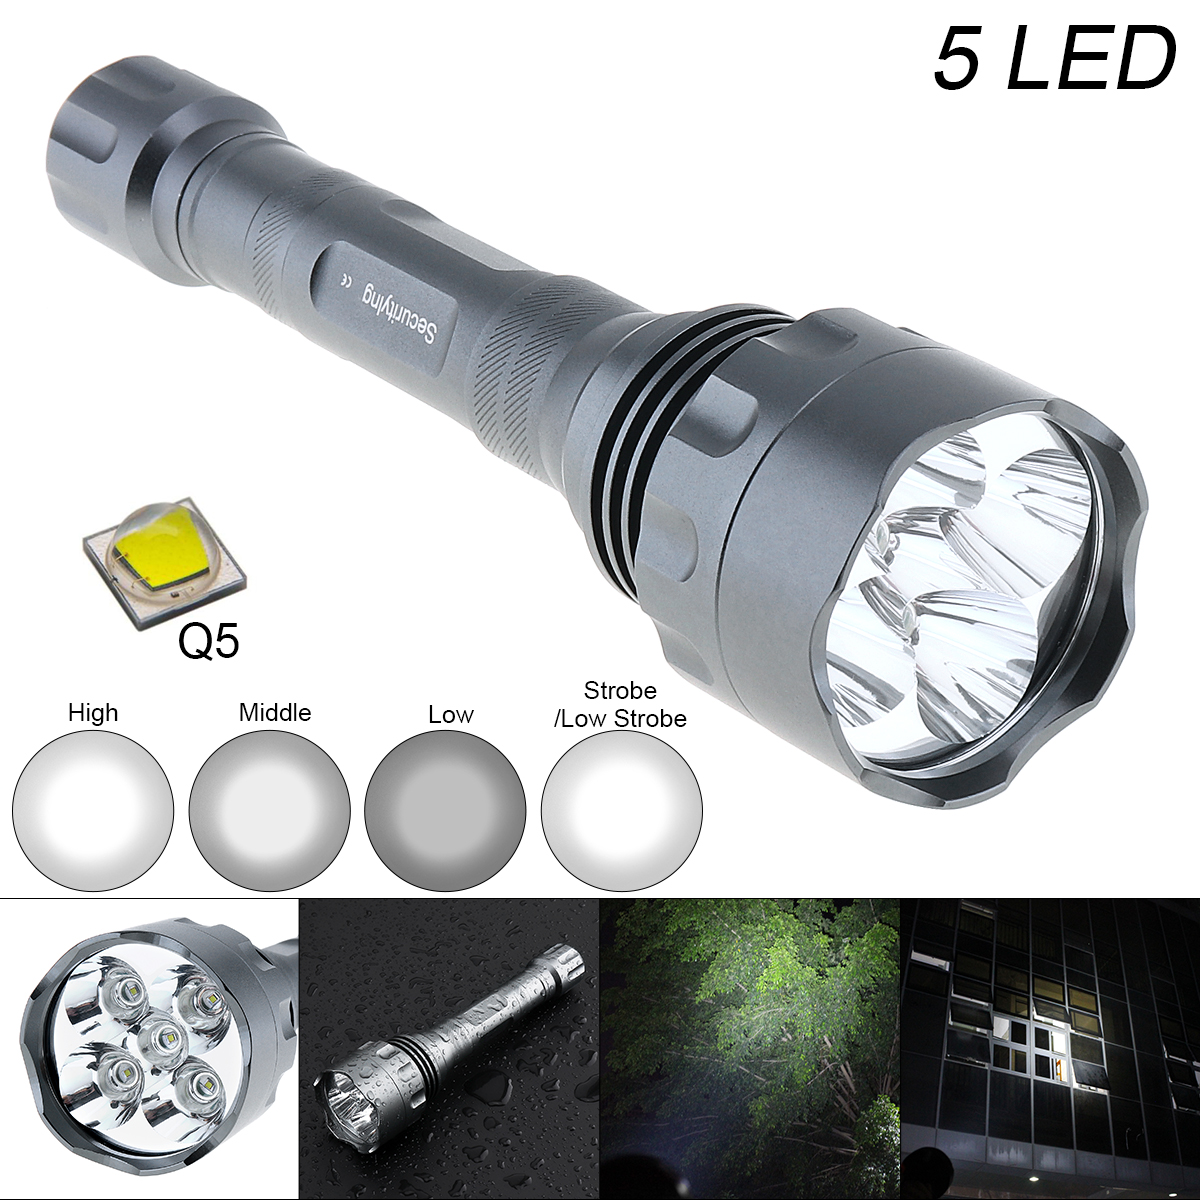 Waterproof 10W Q5 LED Flashlight 1500 Lumens 300M Range and 5 Modes Light Support 18650 Rechargeable Battery